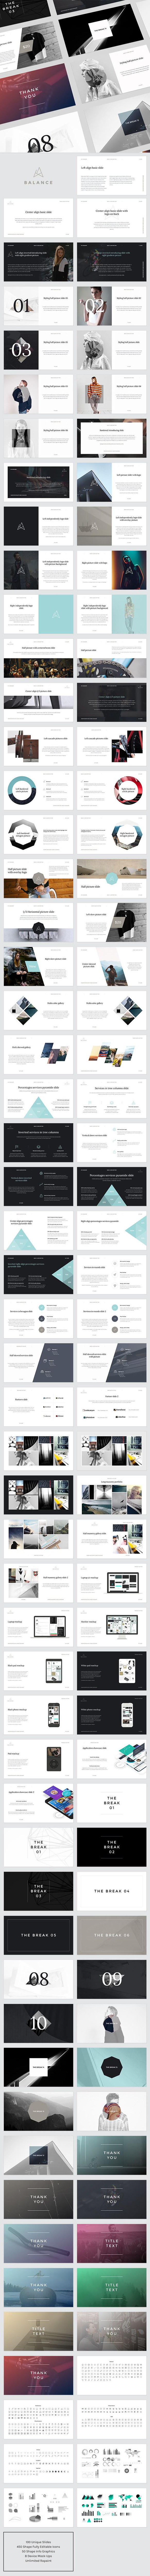 BALANCE Keynote Presentation — Keynote KEY #features #template • Available here → https://graphicriver.net/item/balance-keynote-presentation/14292727?ref=pxcr